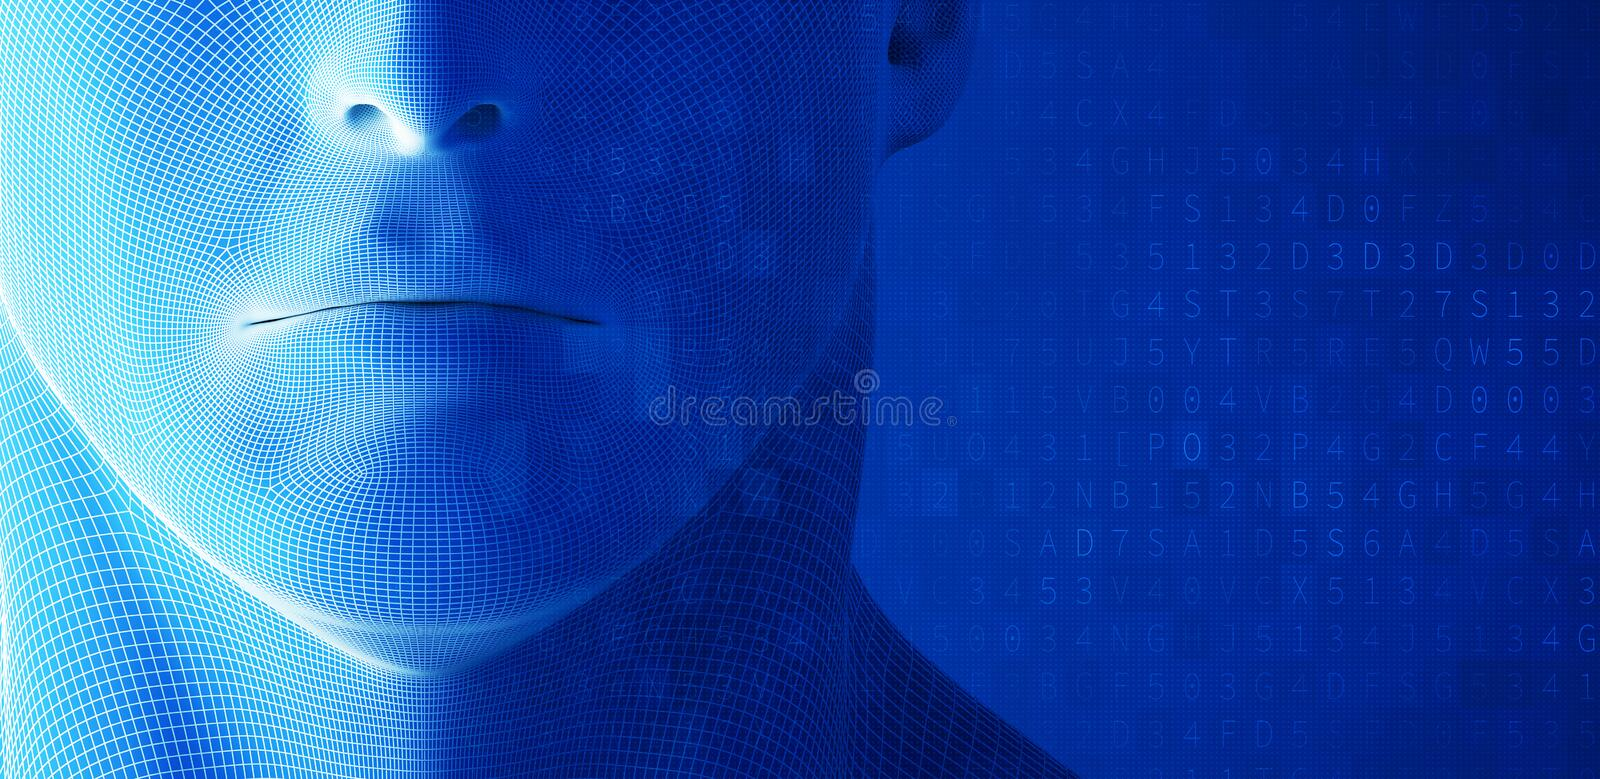 Human face, mouth with data code on blue background in technology concept, artificial intelligence. 3d illustration stock illustration